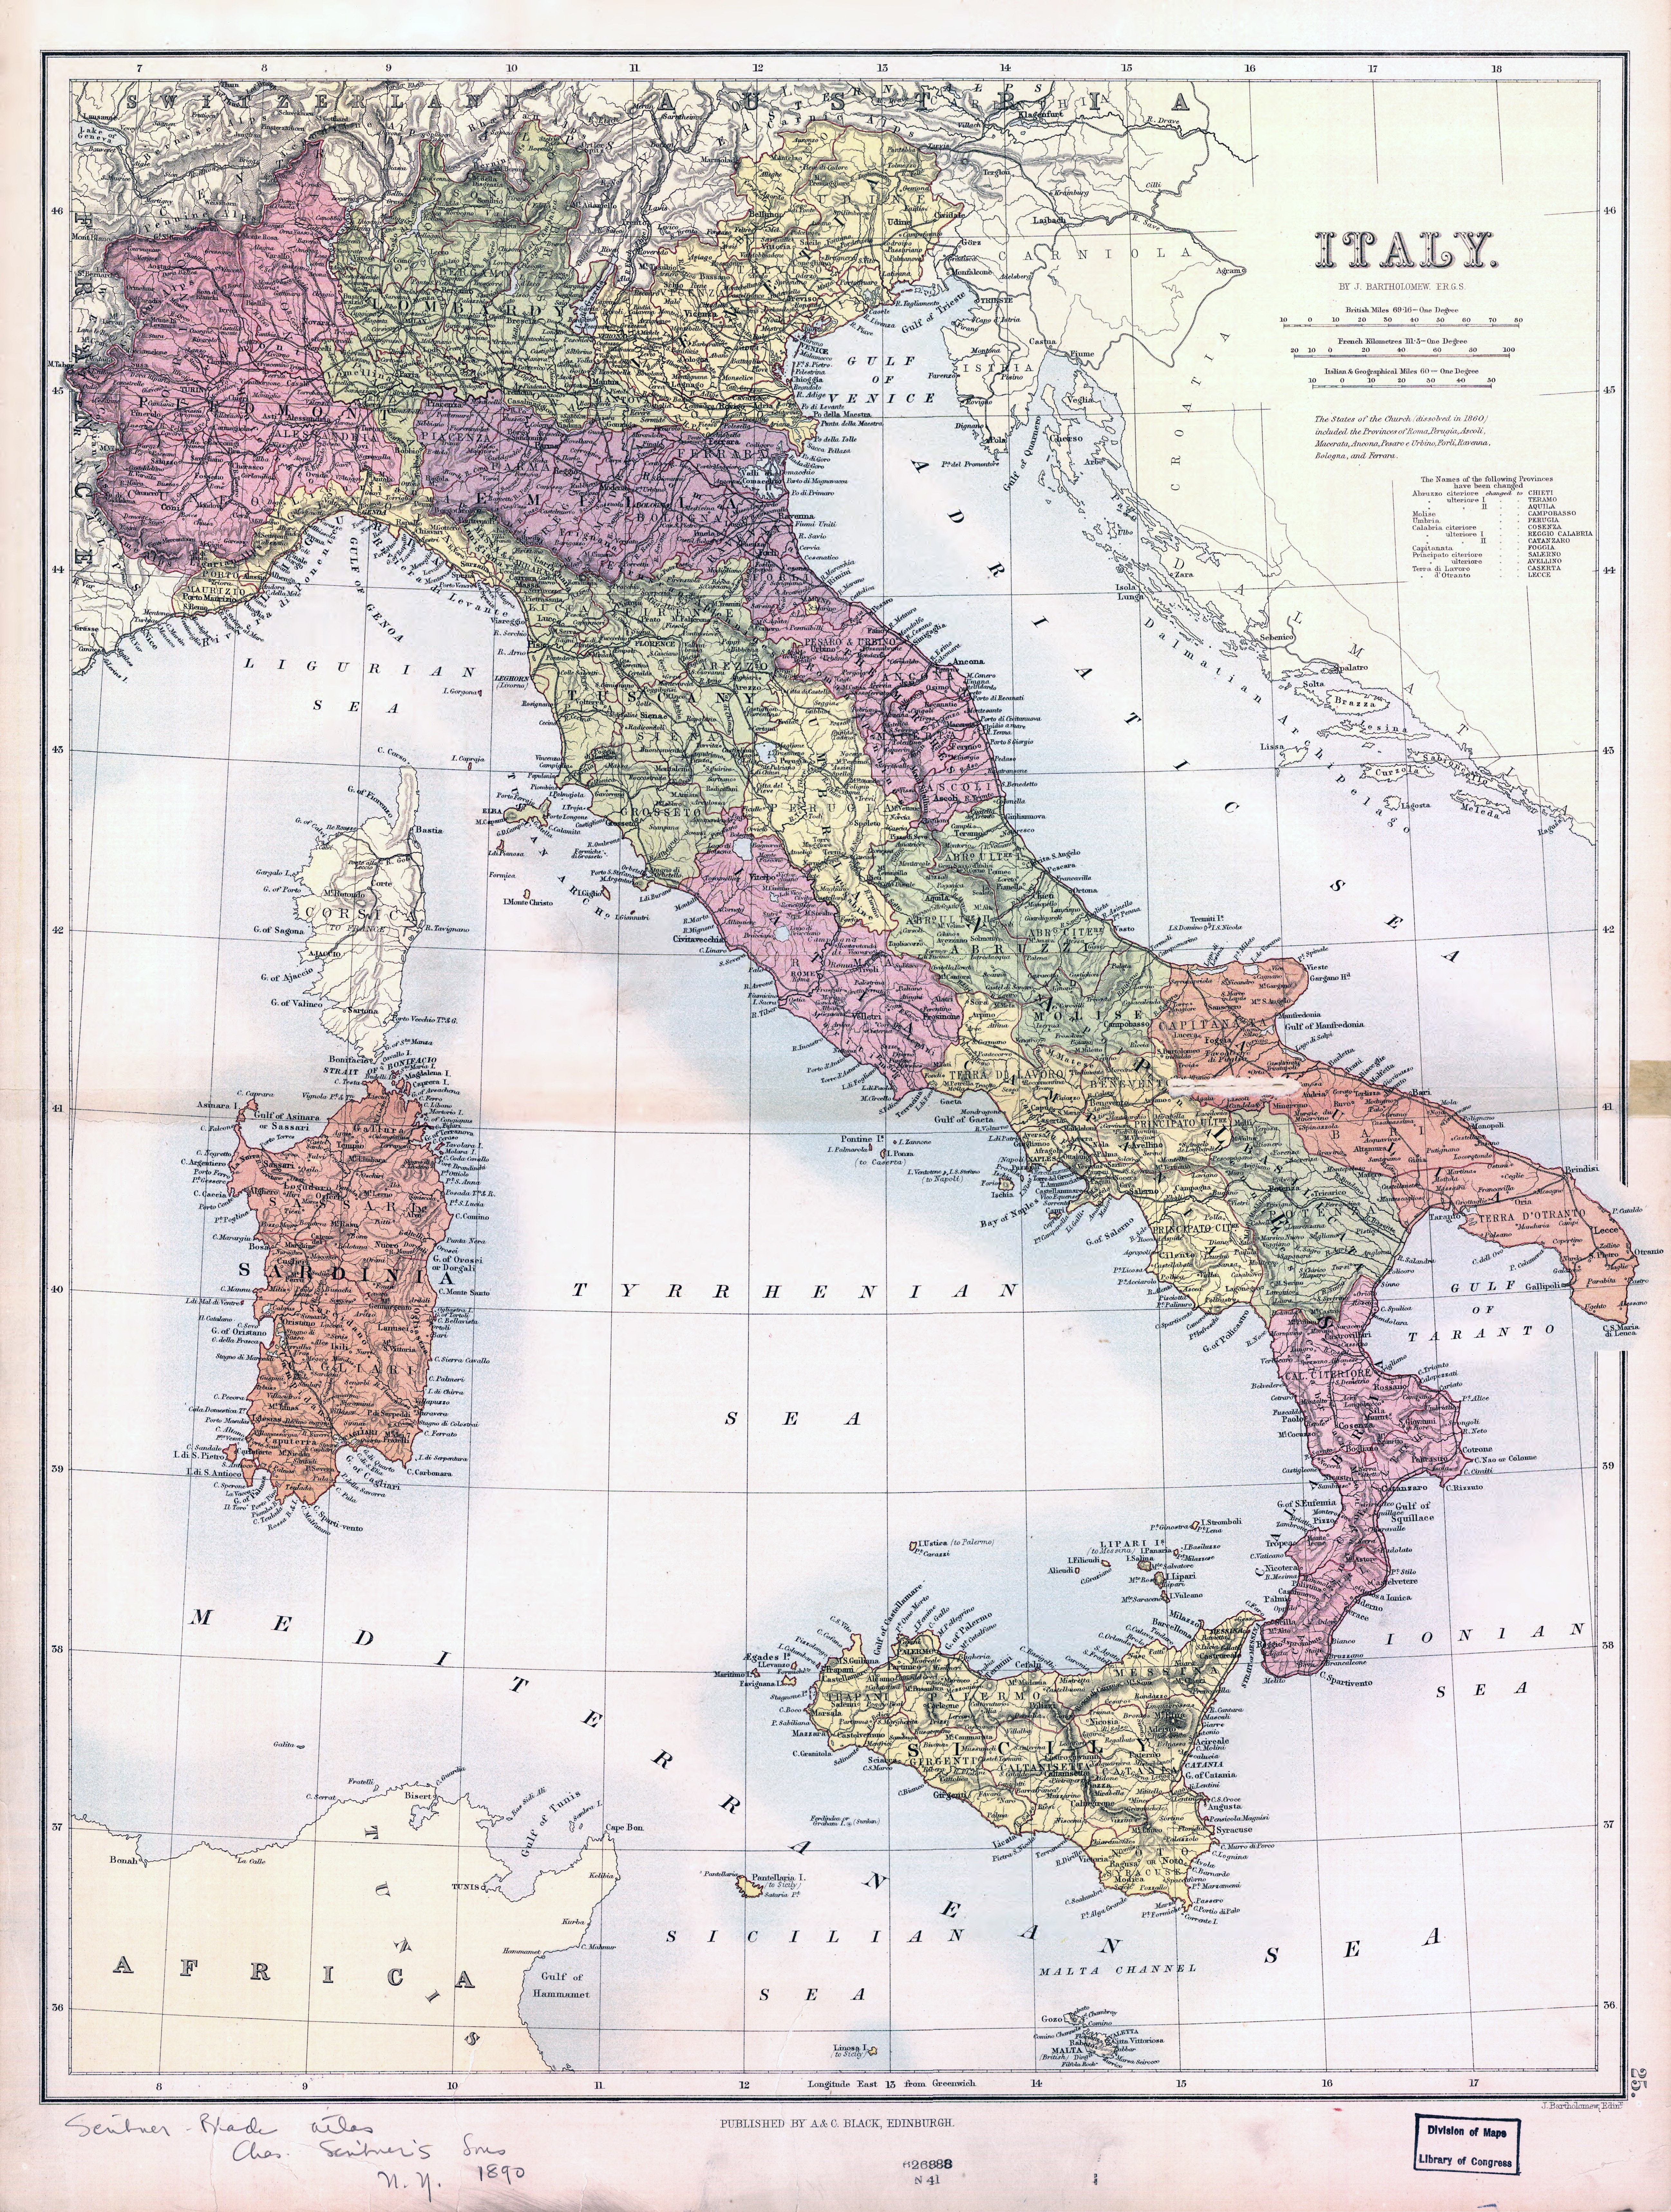 Large scale old political and administrative map of Italy 1890